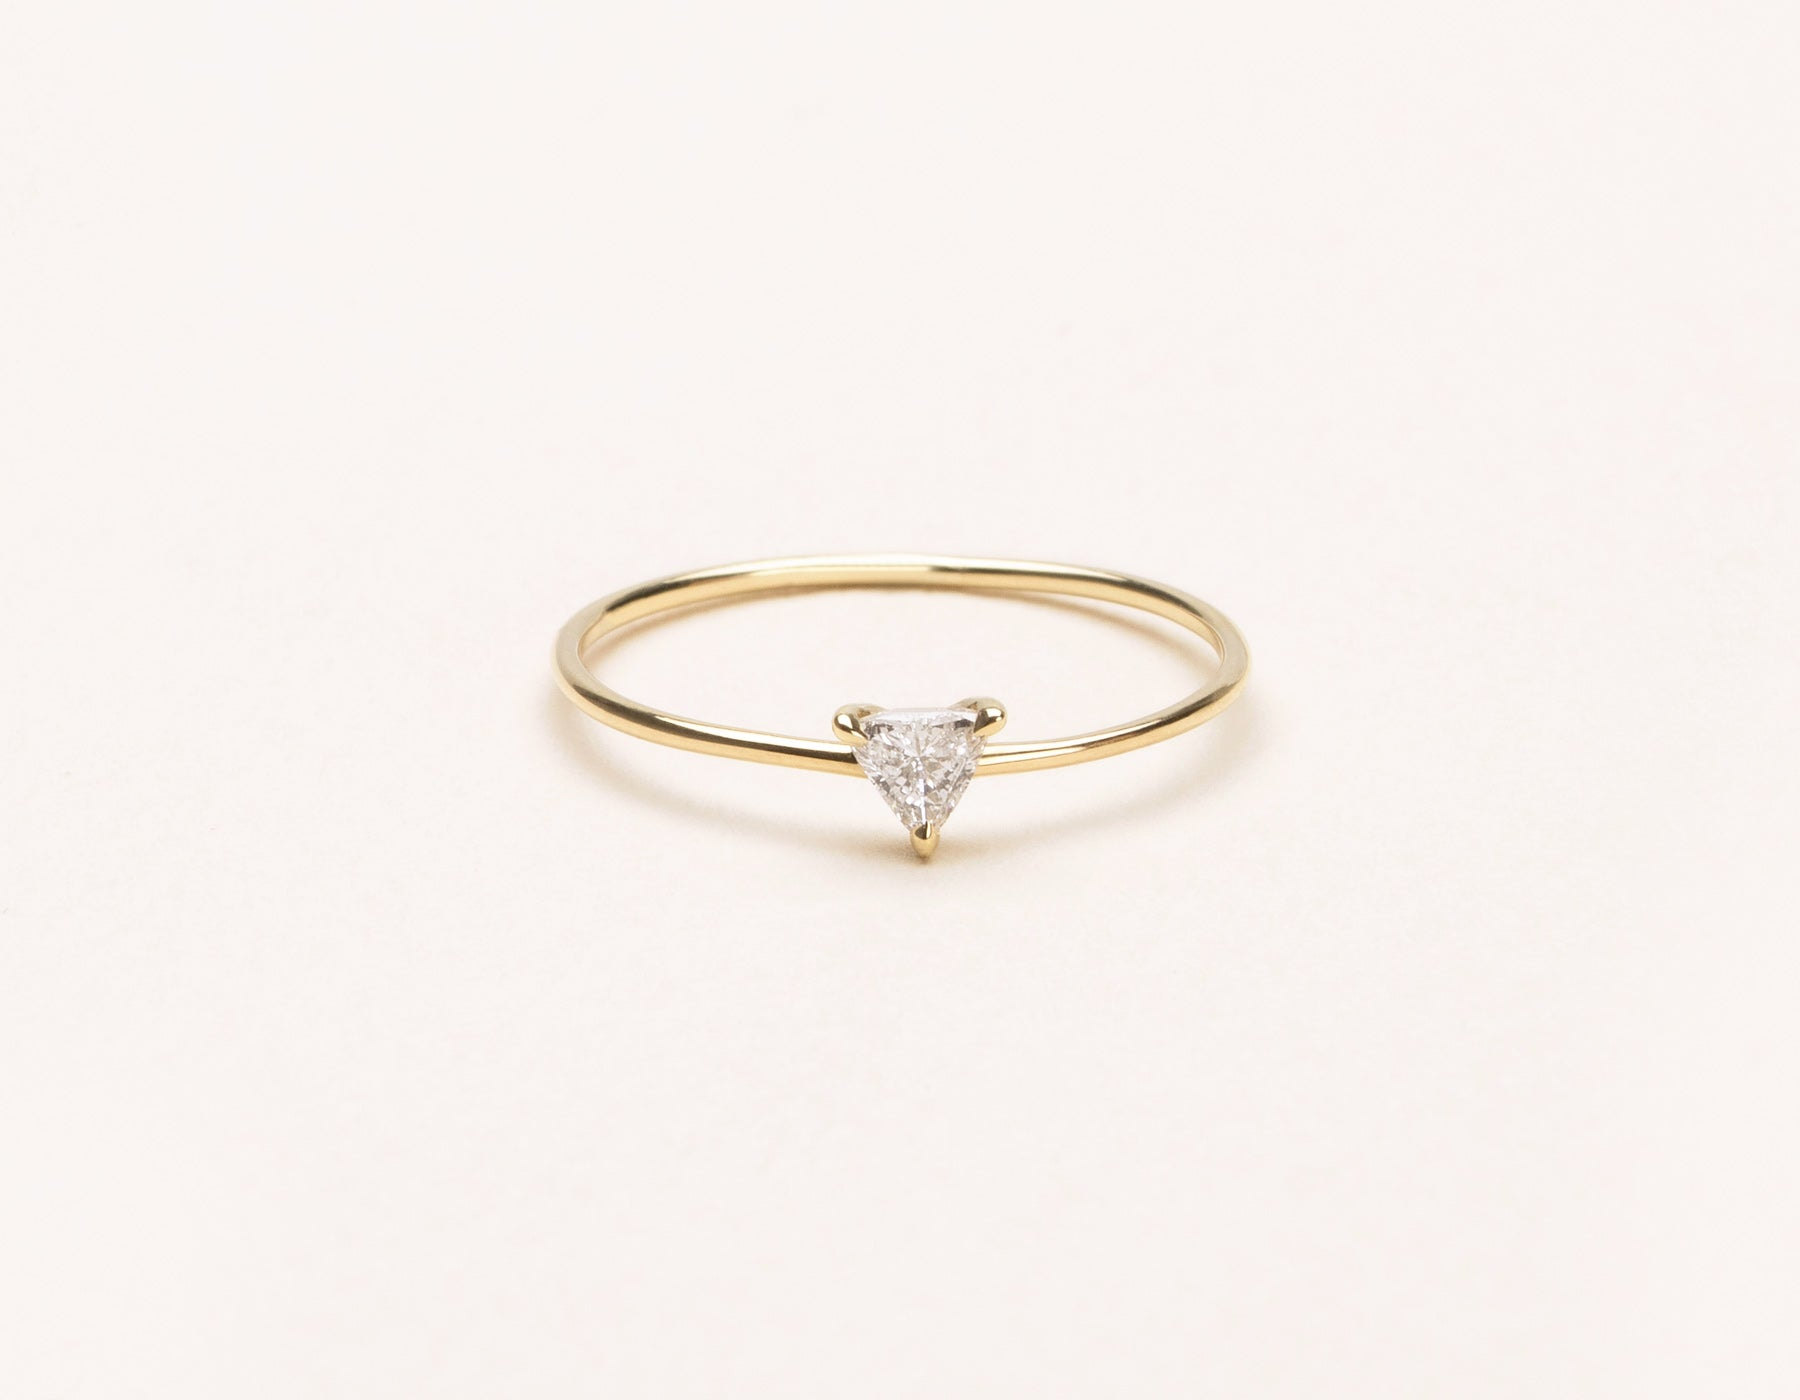 Simple modern Trillion Diamond Ring stacker Vrai and Oro minimalist jewelry, 14K Yellow Gold